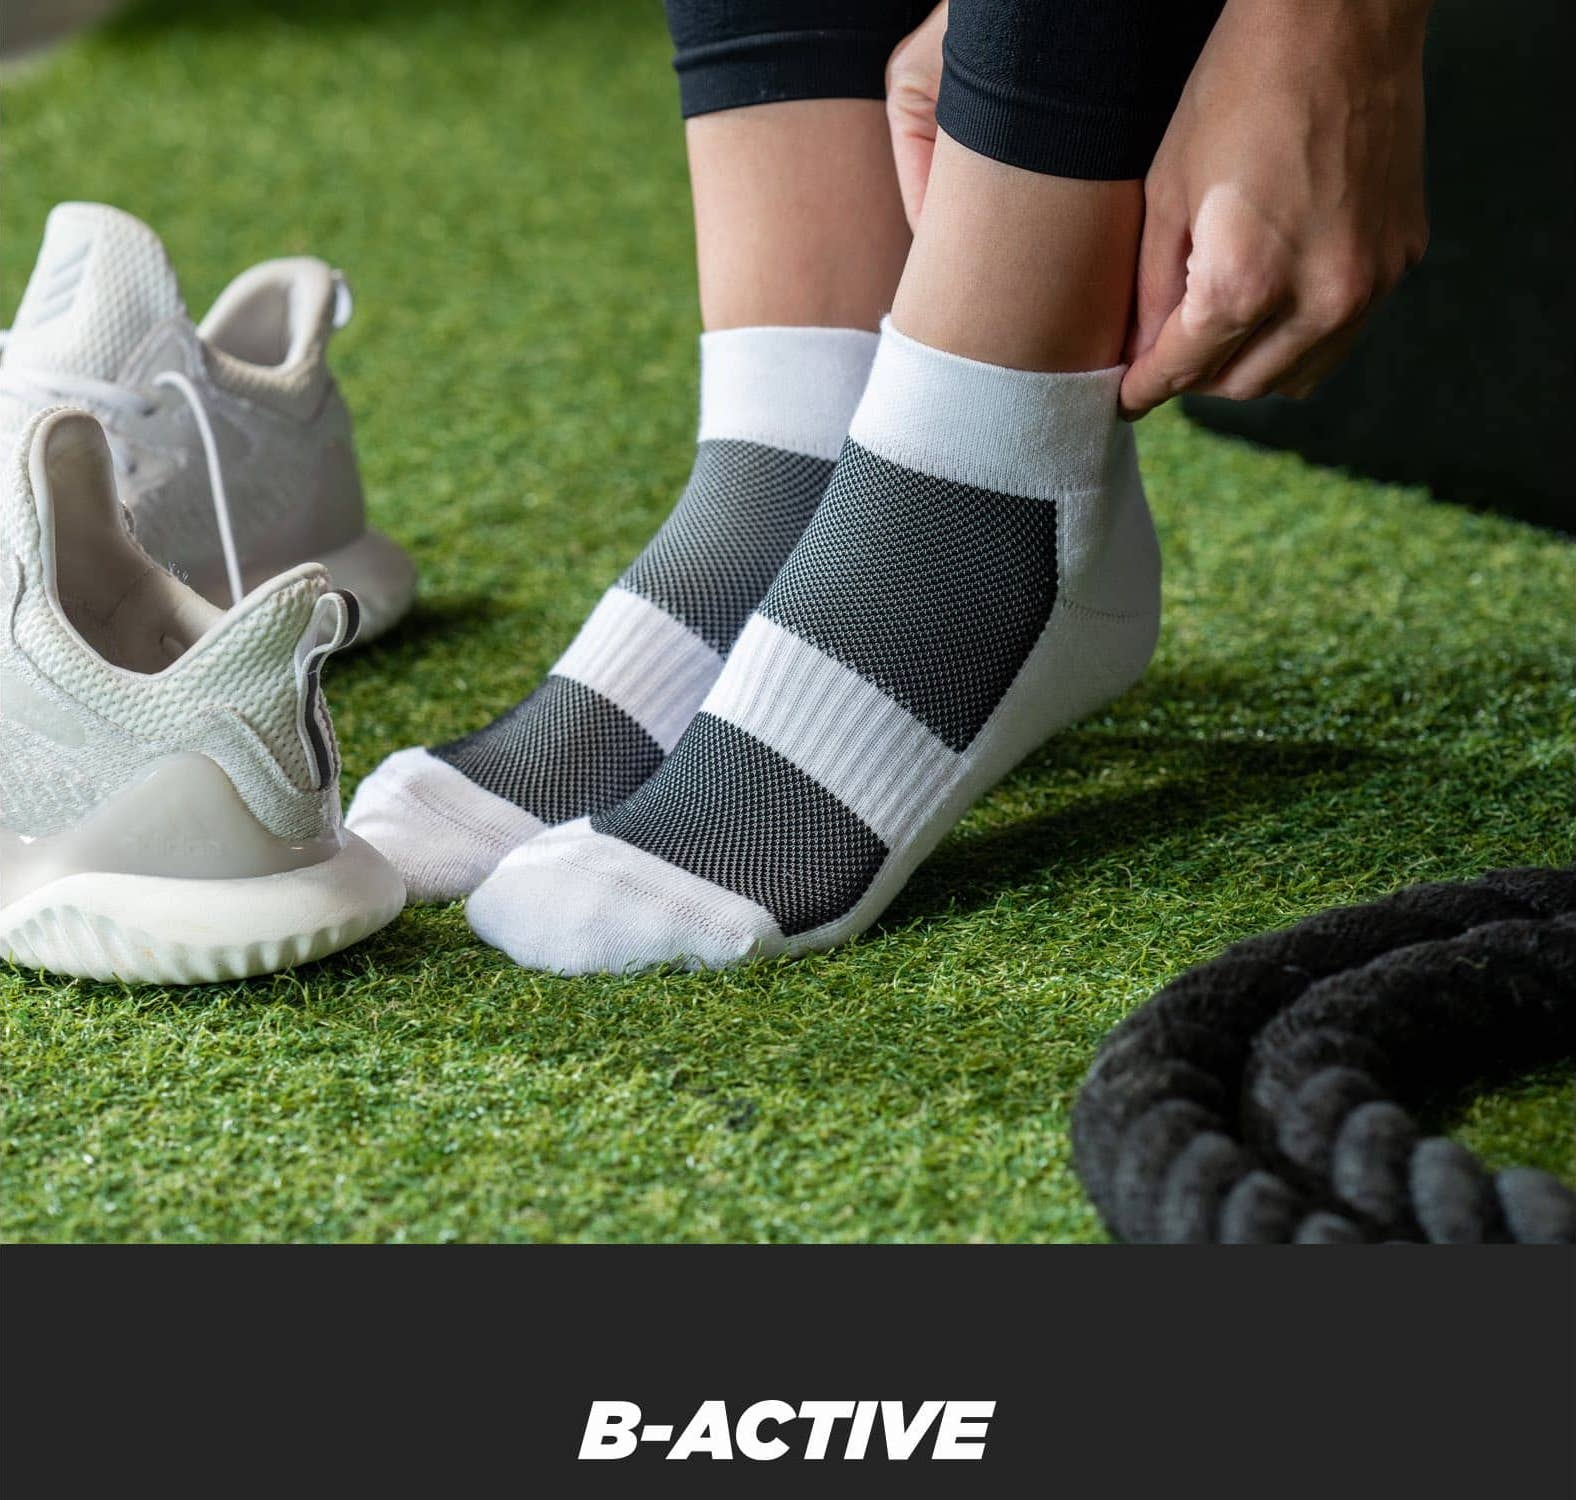 B-Active Socks